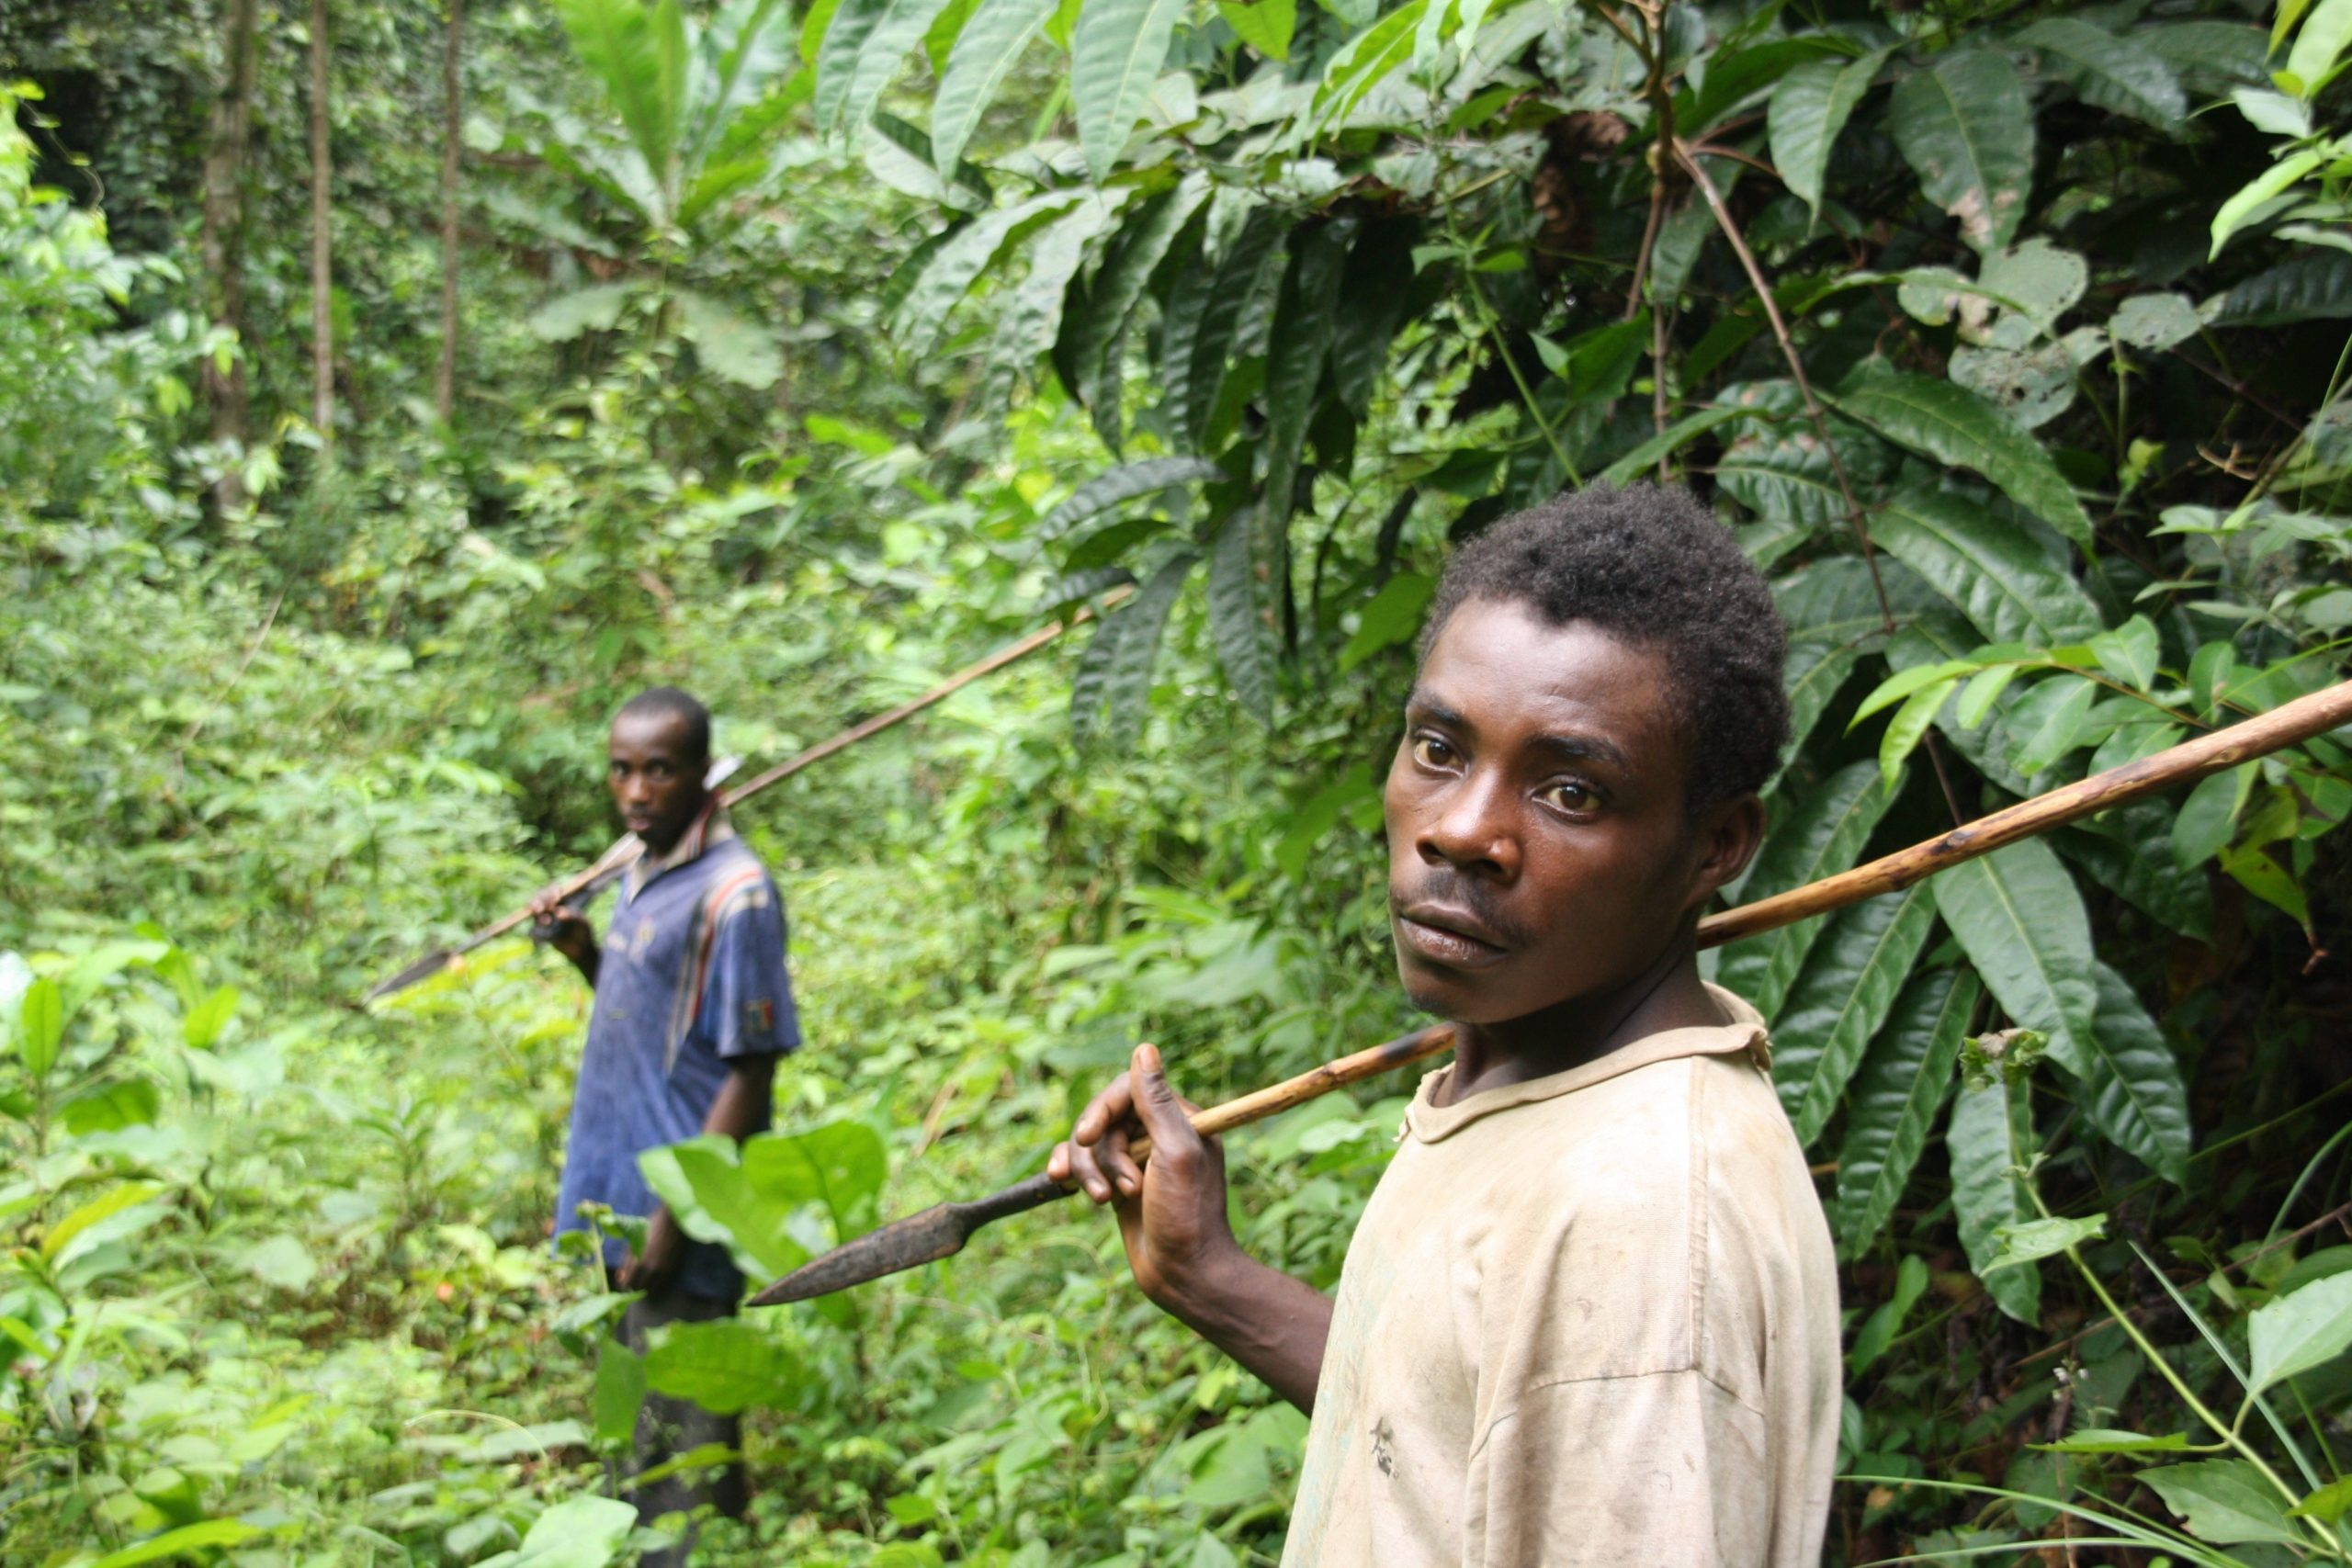 Dyuga René and Ada Joseph hunting in the forest around Ngolo village (photo: Nadine Grimm)